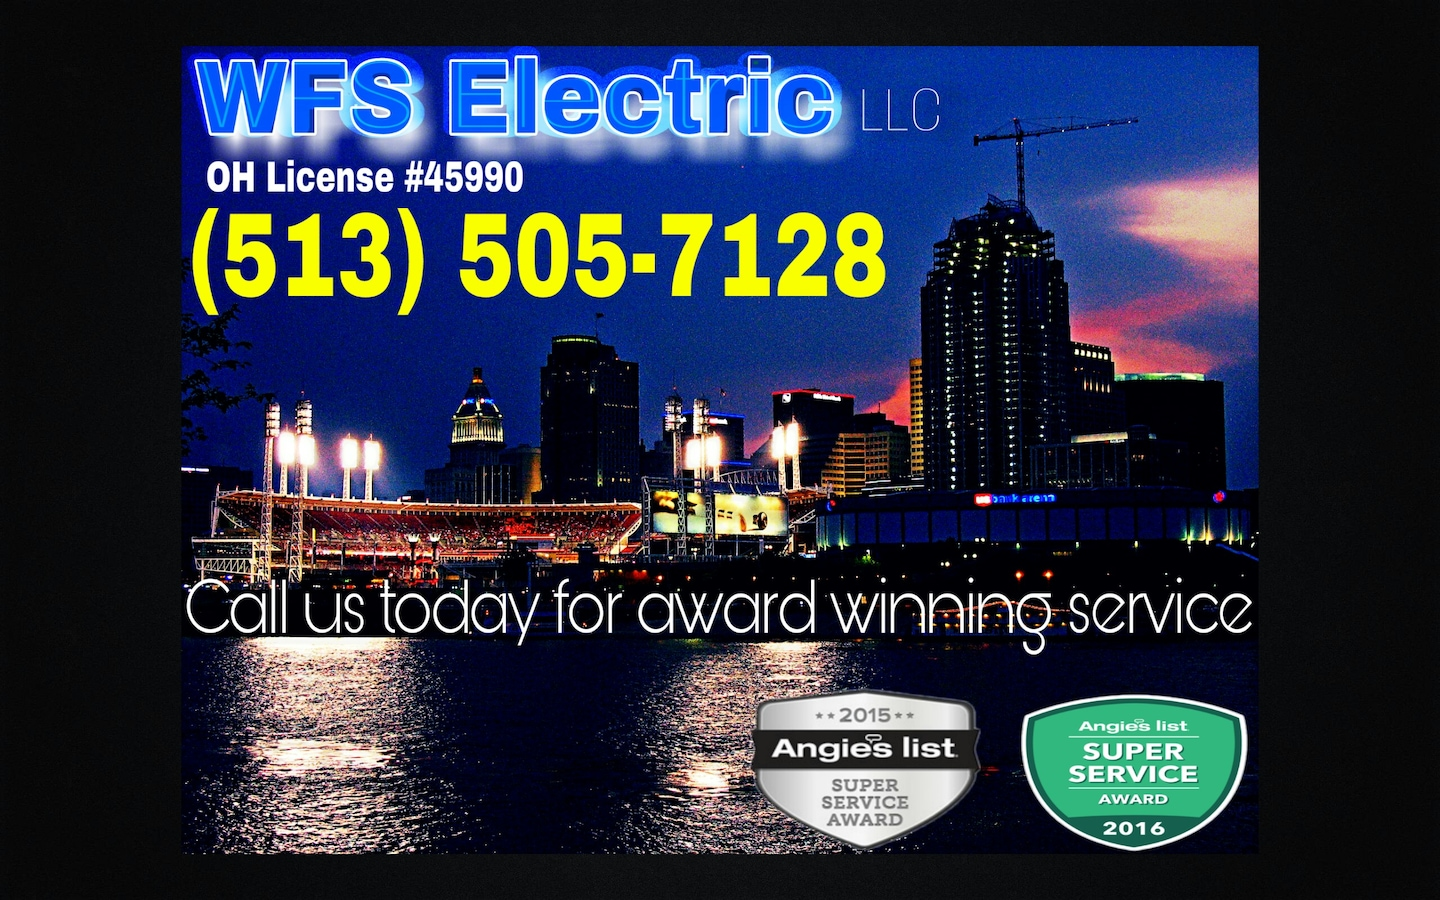 WFS Electric